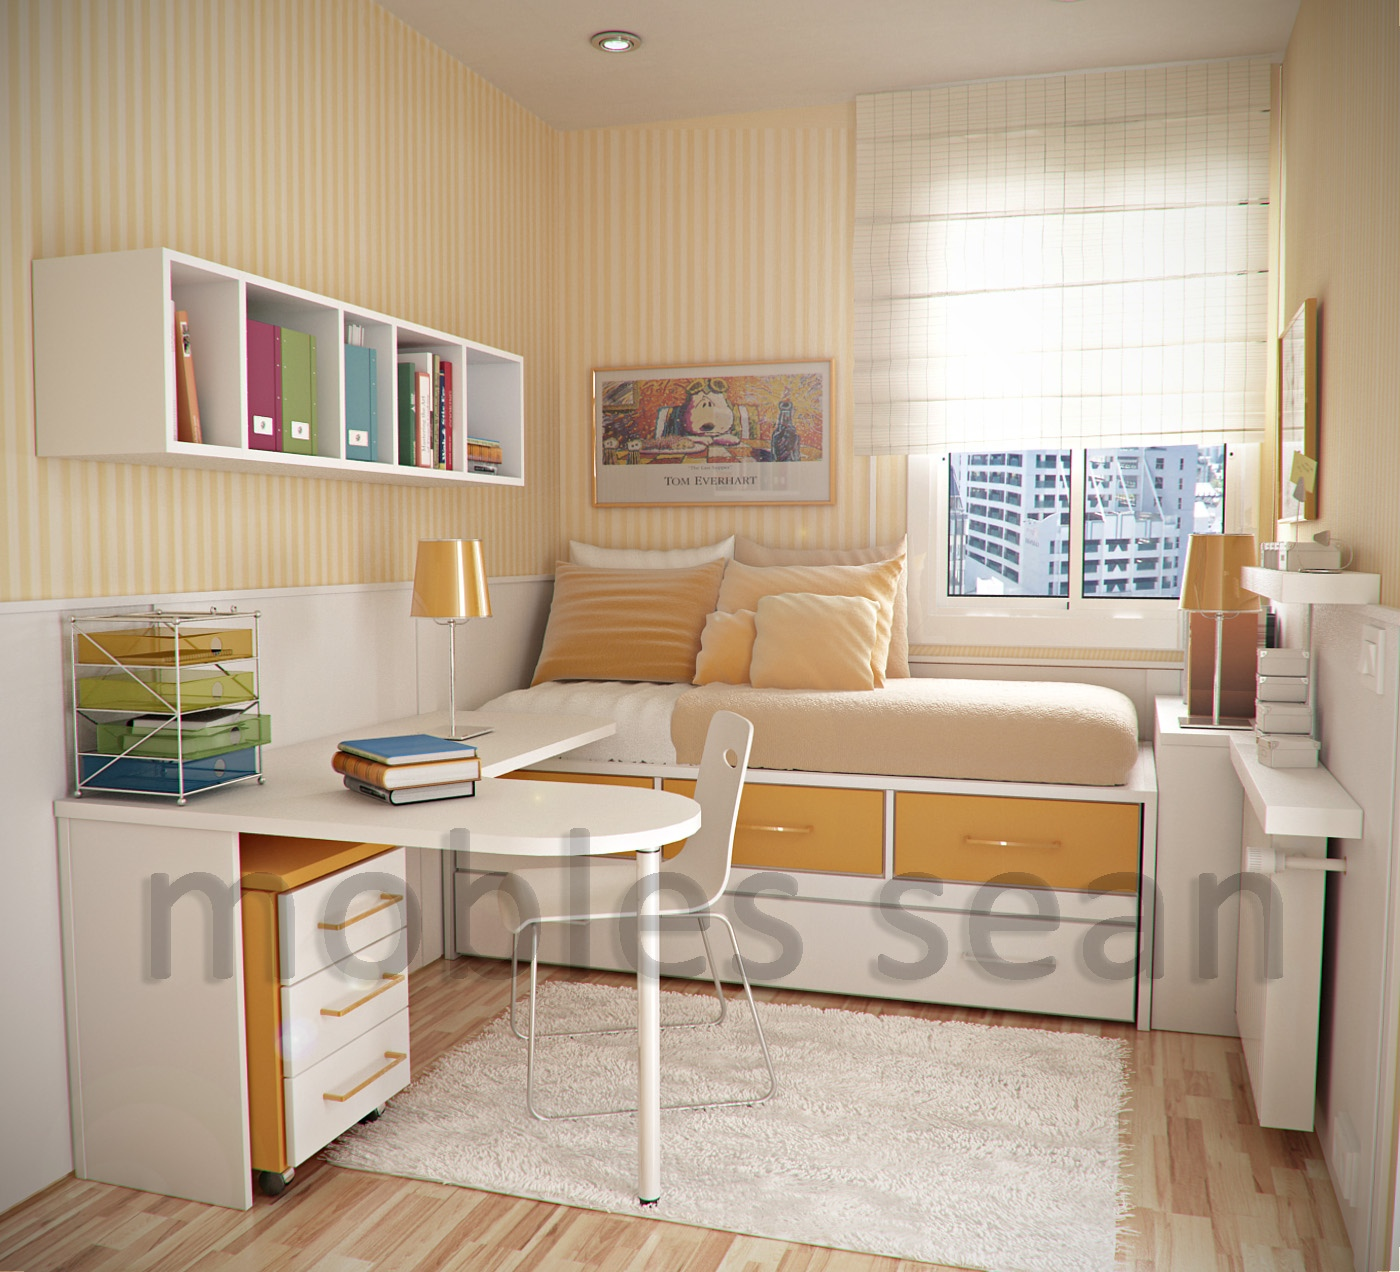 Space saving designs for small kids rooms - Images of beds in small spaces ...